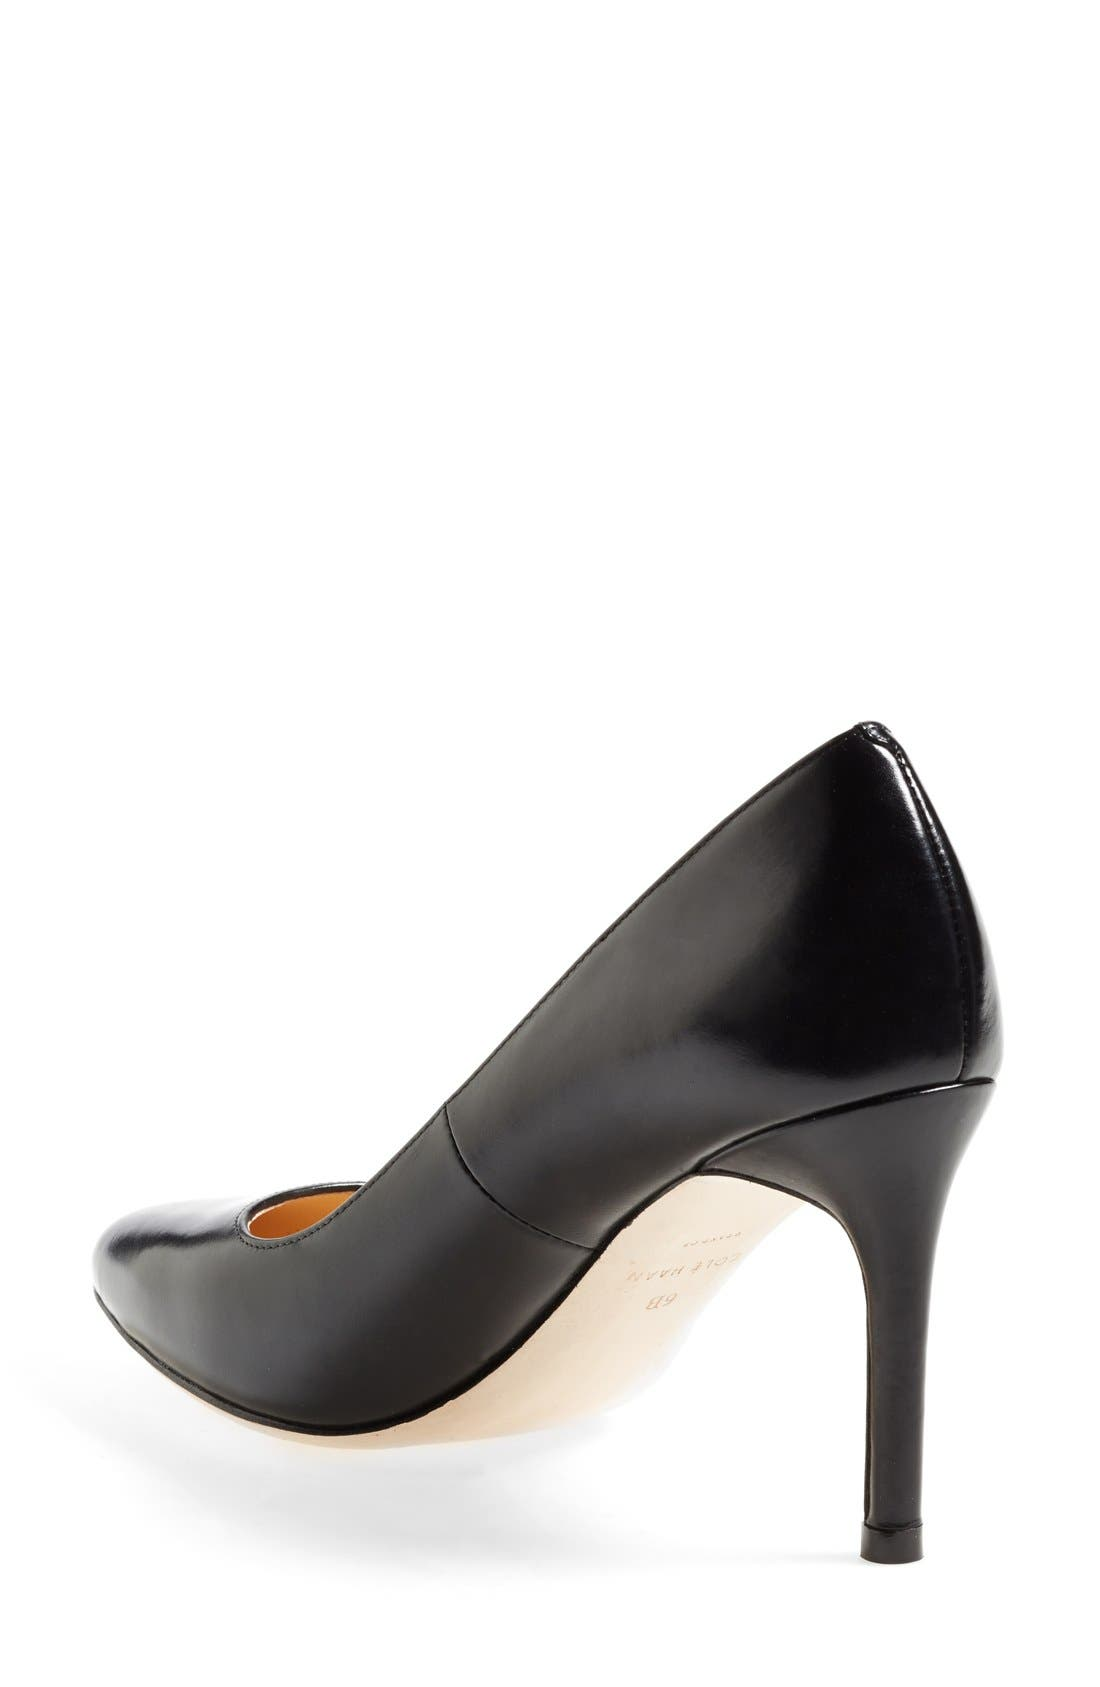 COLE HAAN,                             'Bethany' Leather Pump,                             Alternate thumbnail 4, color,                             001